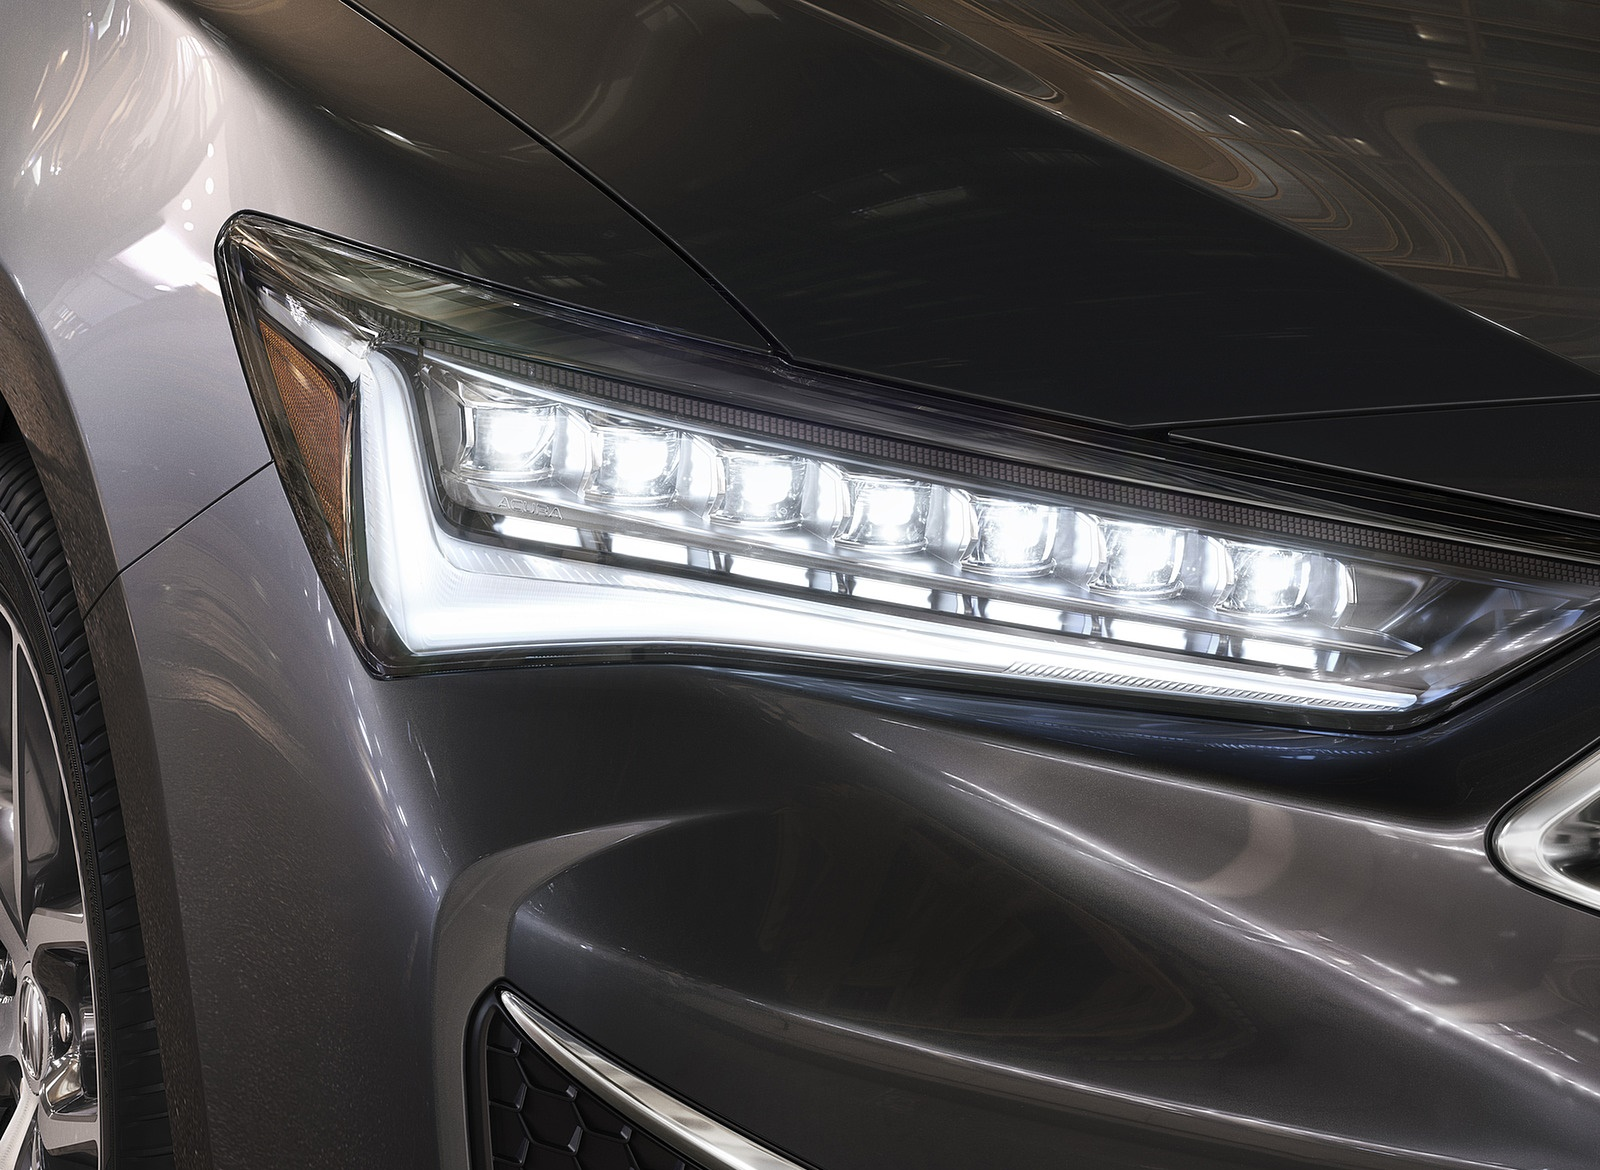 2019 Acura ILX Headlight Wallpapers (8)